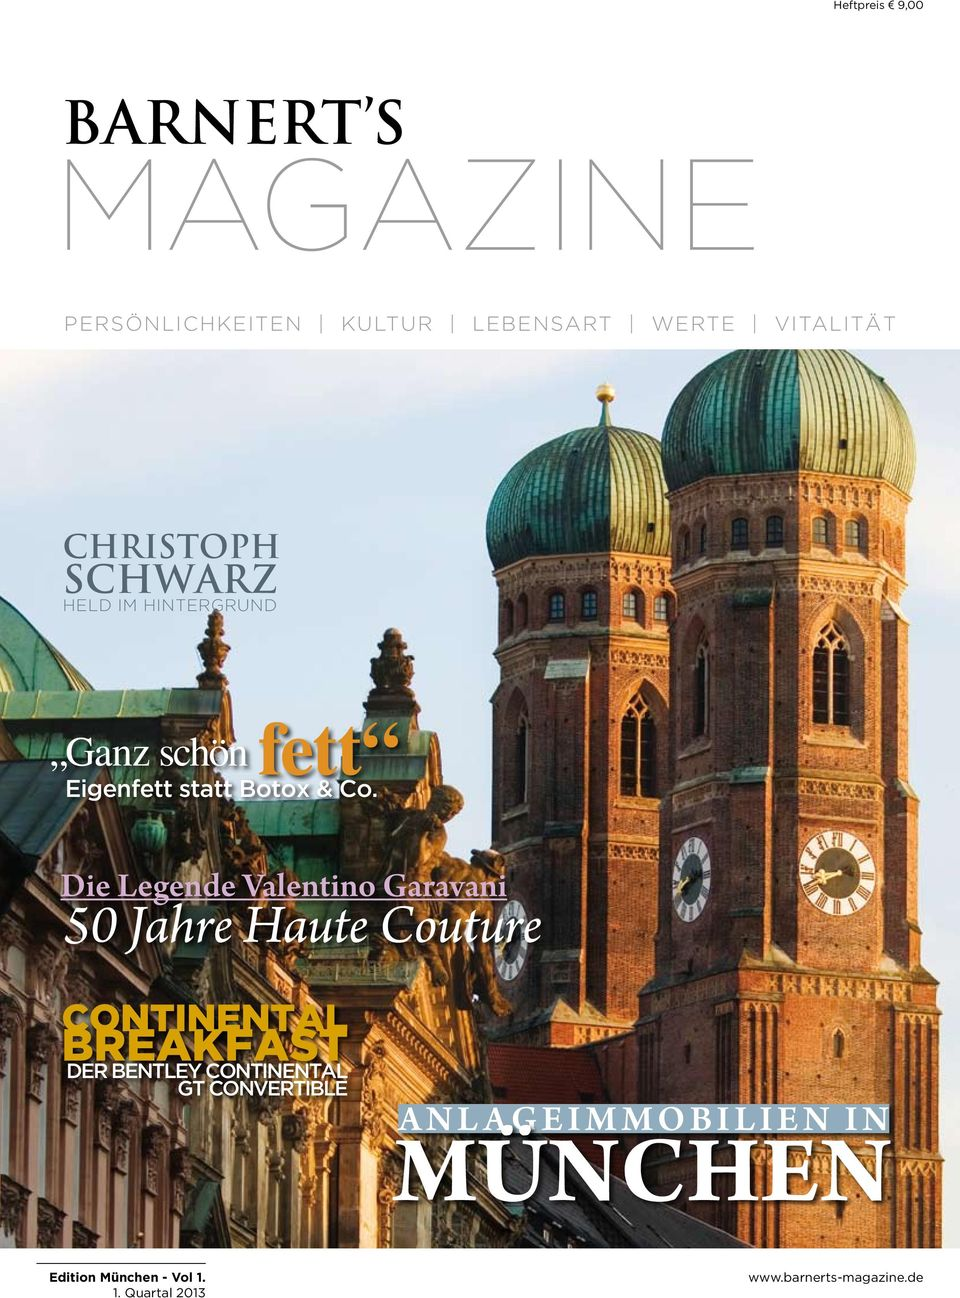 Die Legende Valentino Garavani 50 Jahre Haute Couture Continental Breakfast Der Bentley